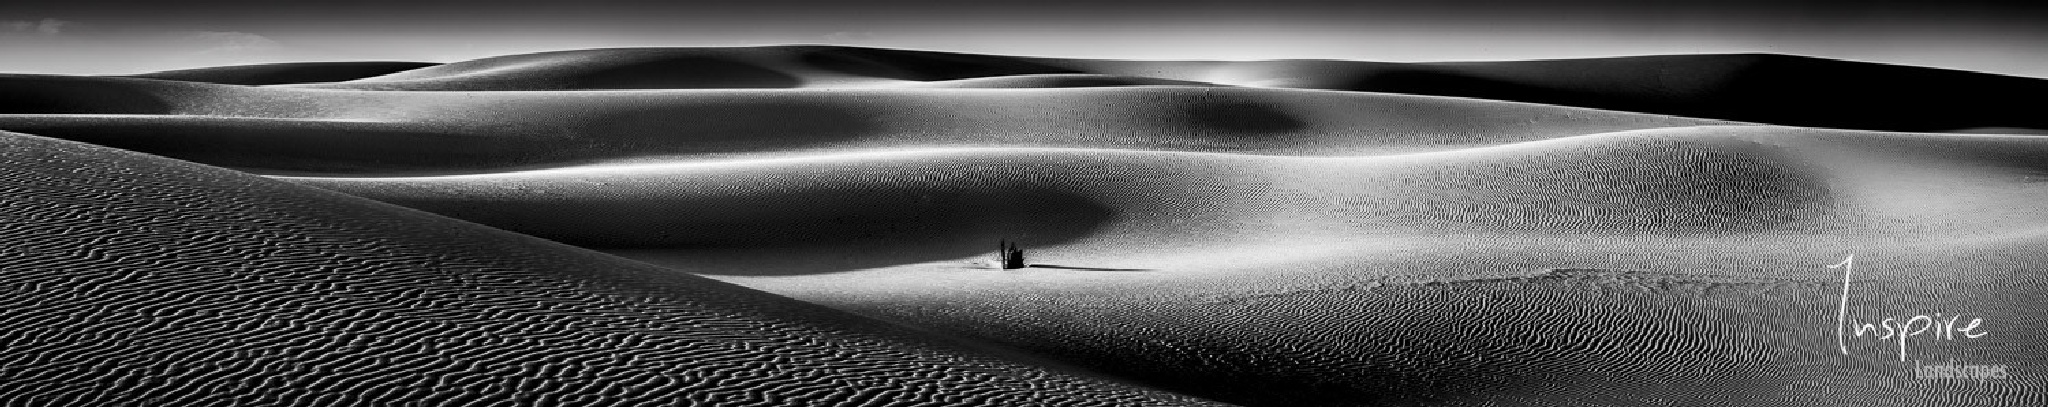 Sand Dune Panoramic by inspirelandscapes